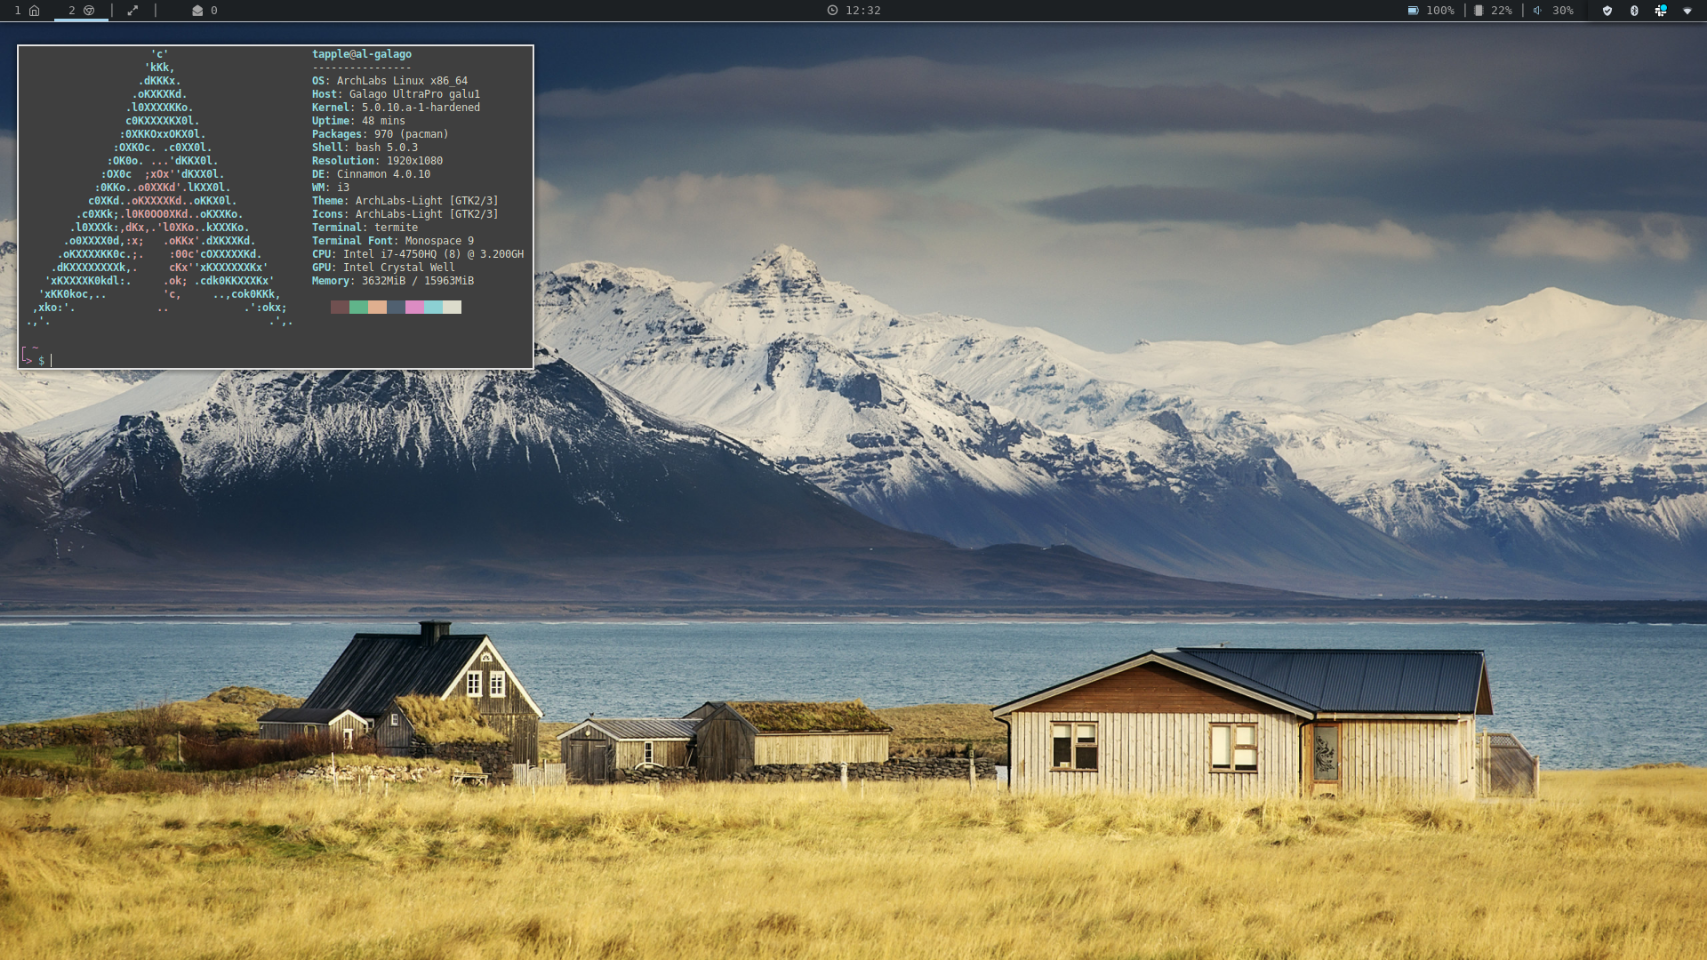 ArchLabsLinux: